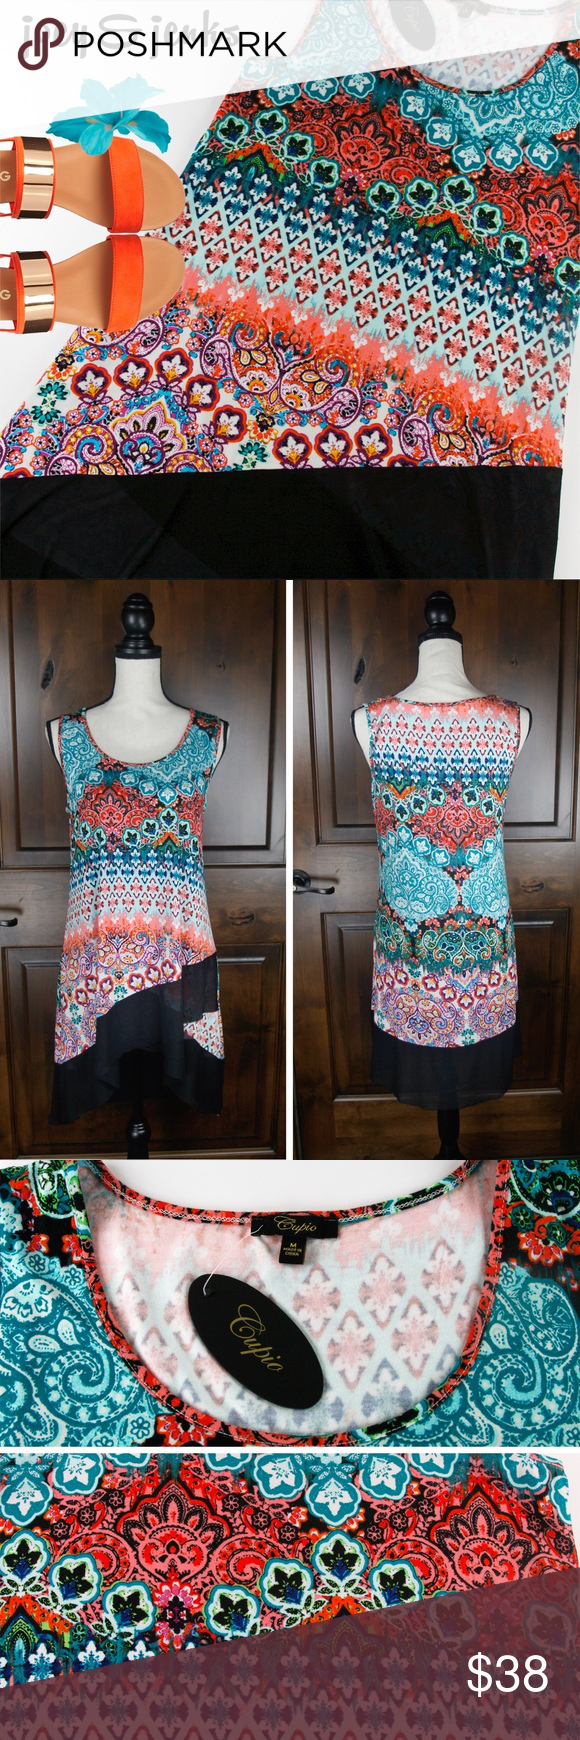 Bogonwt cupio tunic top or dress medium a must have for your